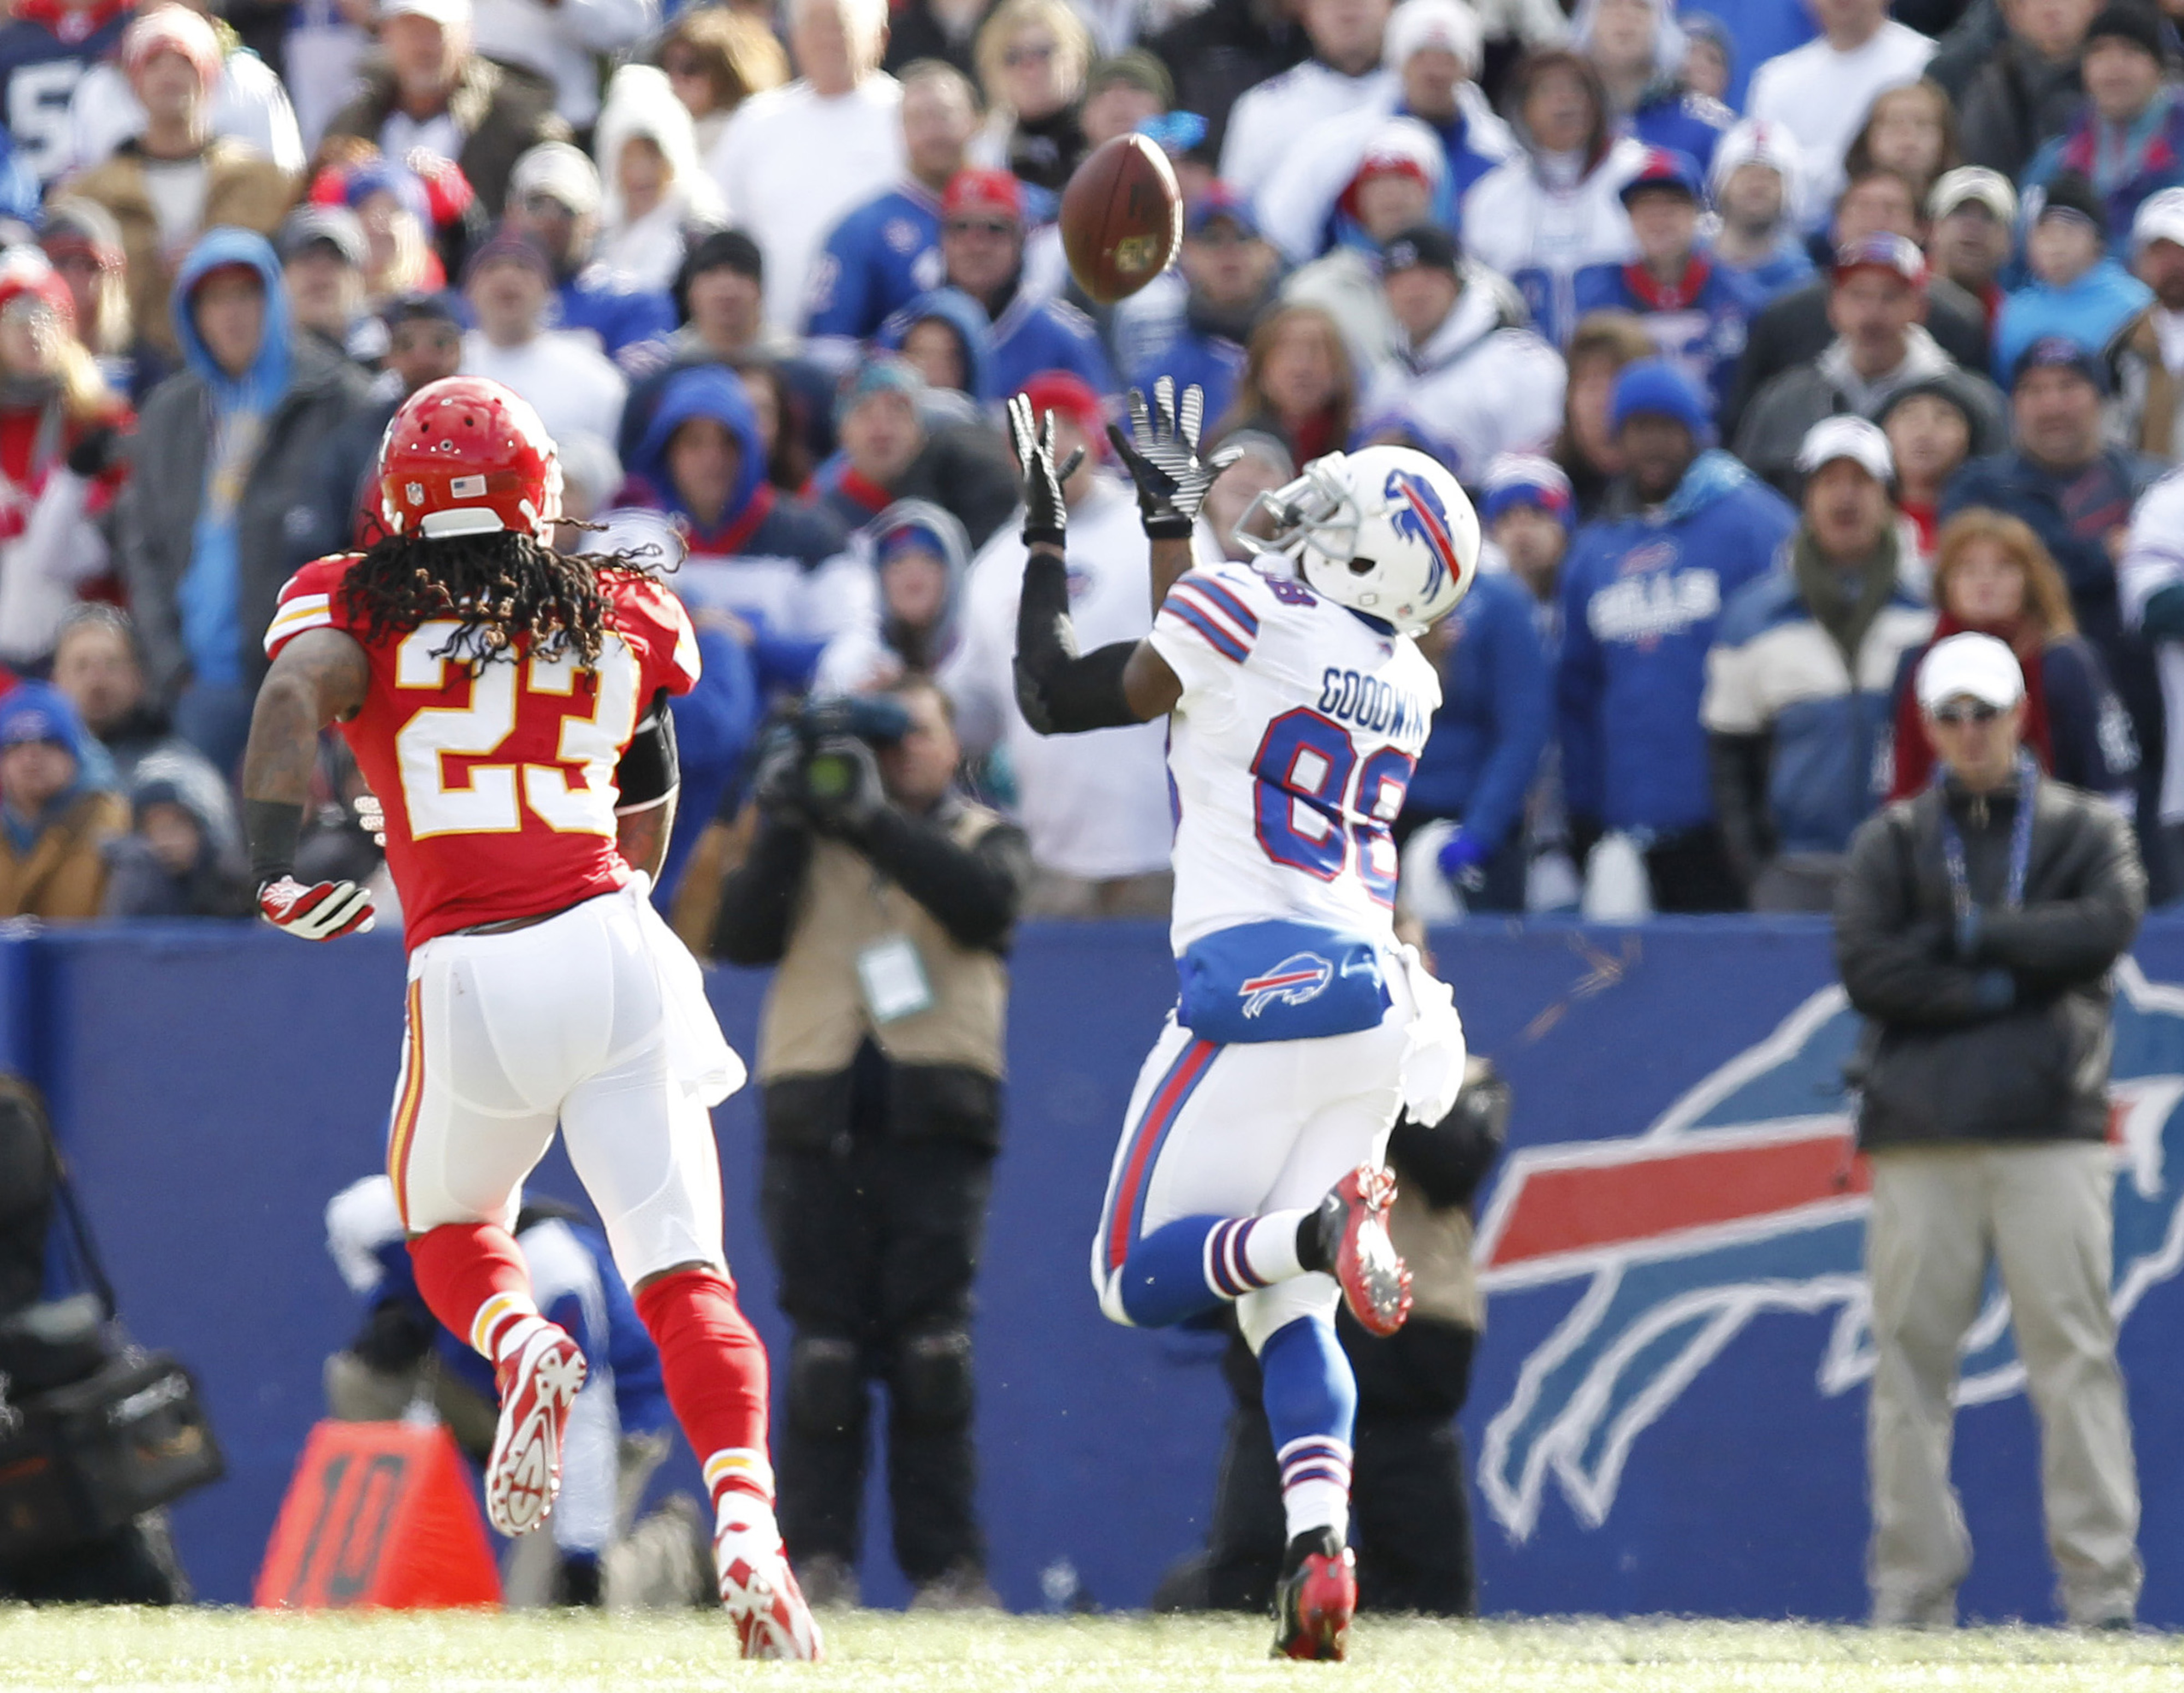 Going out on a limb here...Marquise Goodwin would have been a better option than Keshawn Martin.